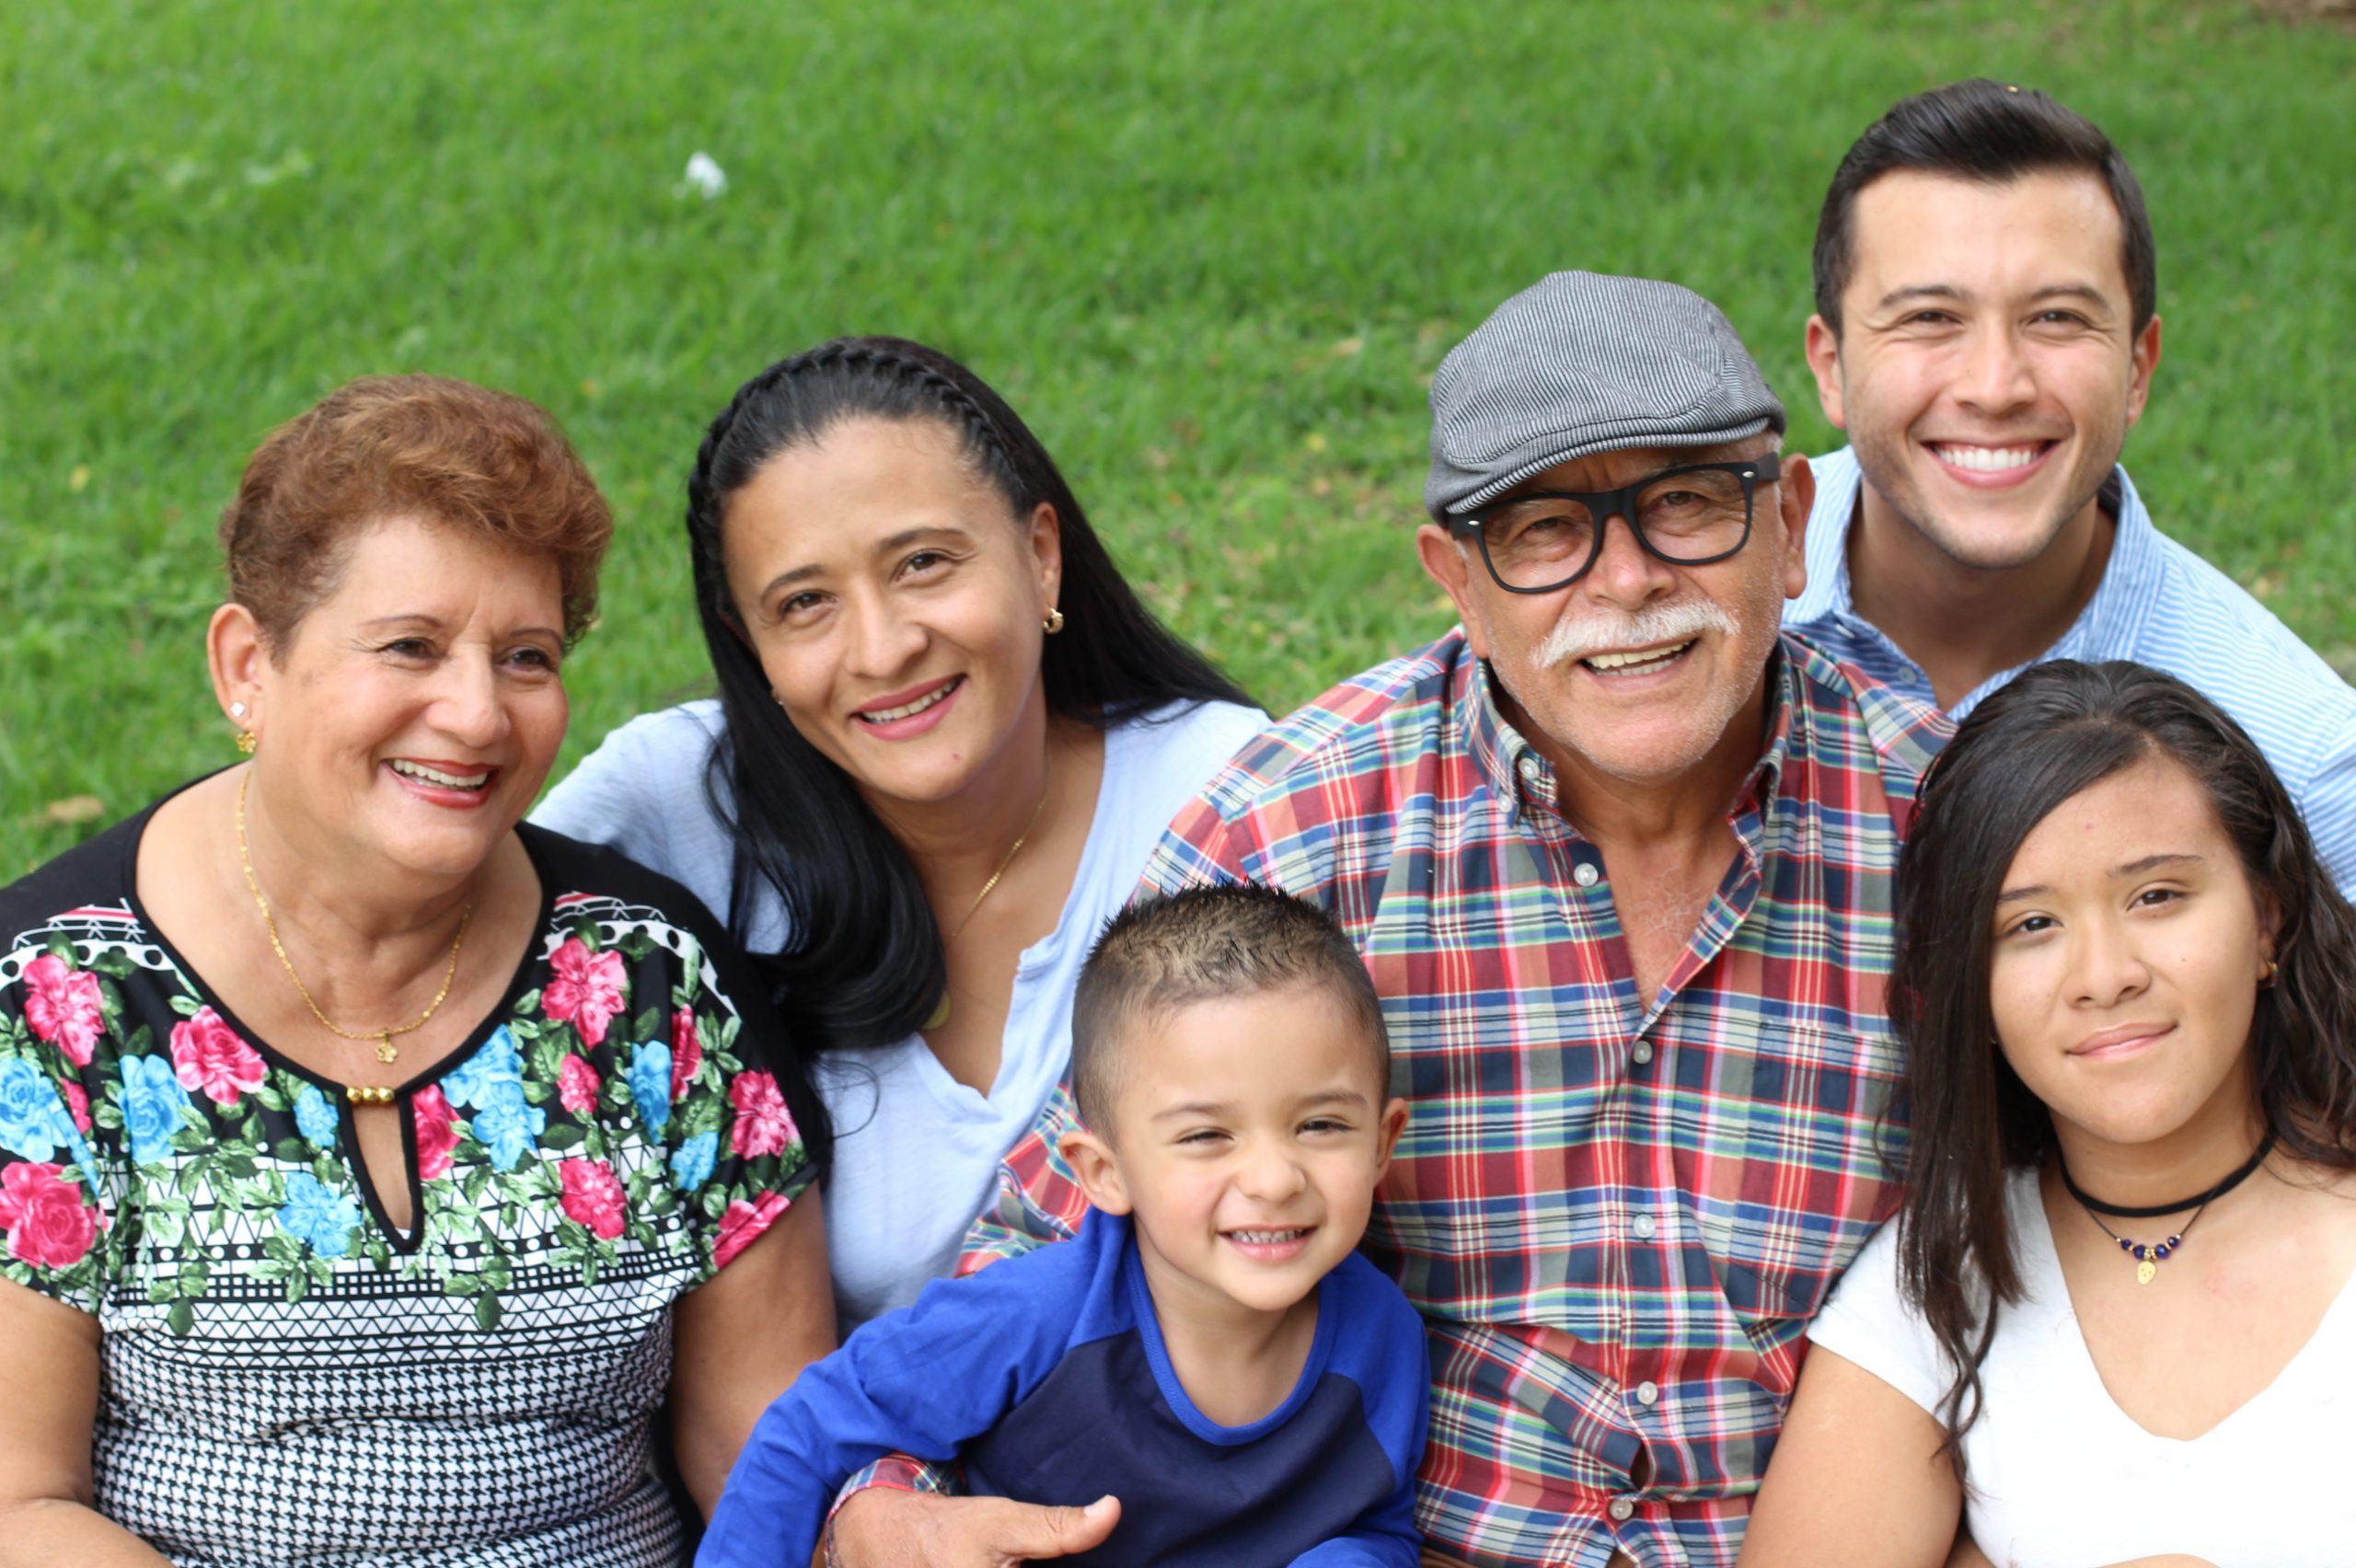 Three generations of a hispanic family